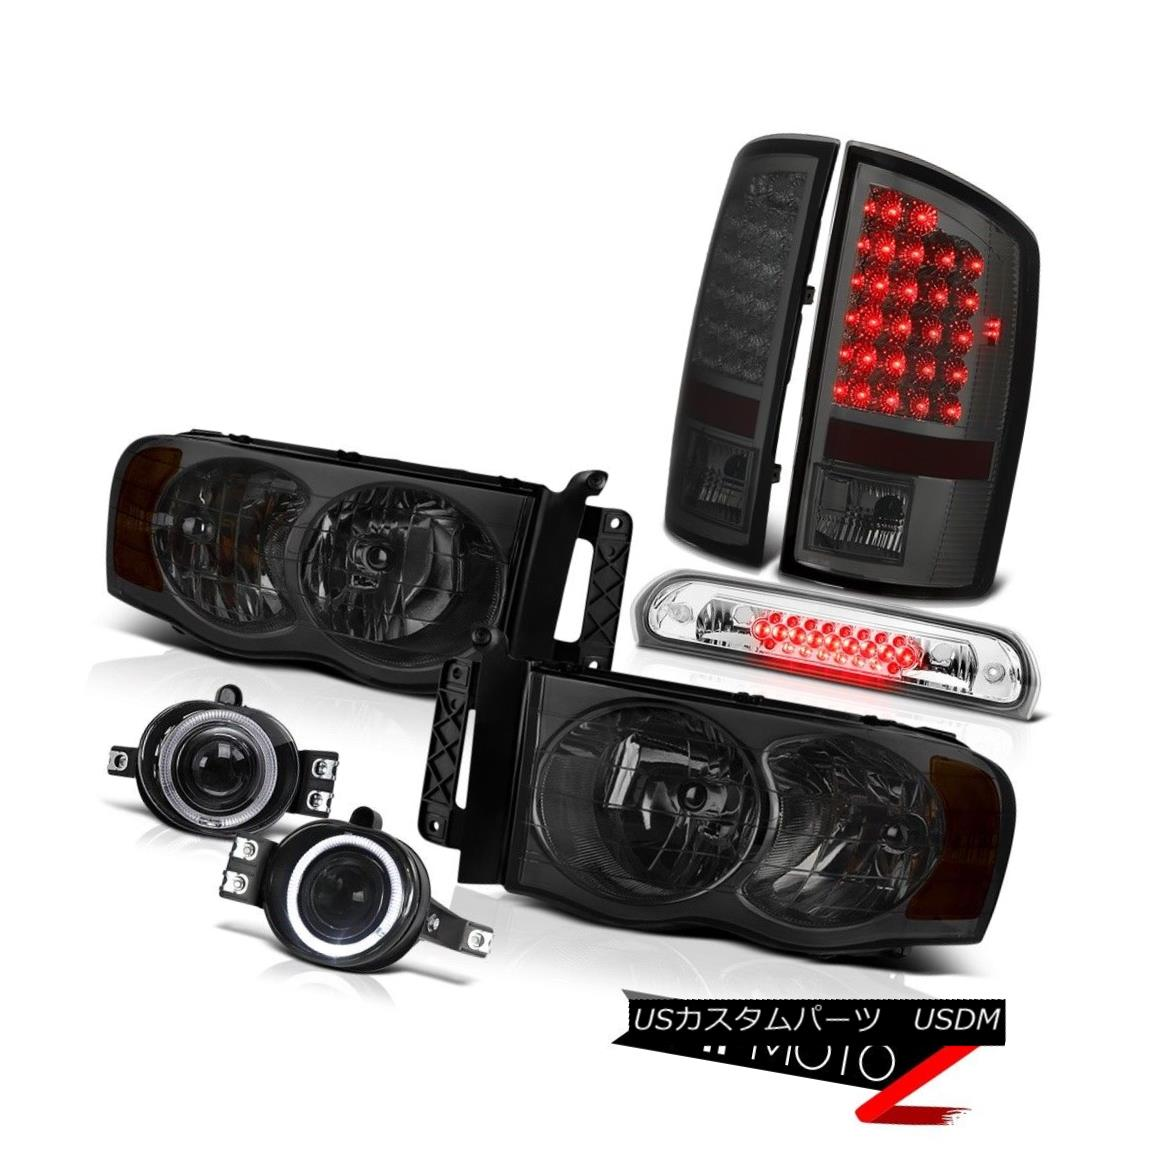 ヘッドライト 2002-2005 Ram 2500 Pair Smoke Headlamps Brake Tail Lights Halo Fog 3rd Cargo LED 2002-2005 Ram 2500 Pair Smoke HeadlampsブレーキテールライトHalo Fog 3rd Cargo LED